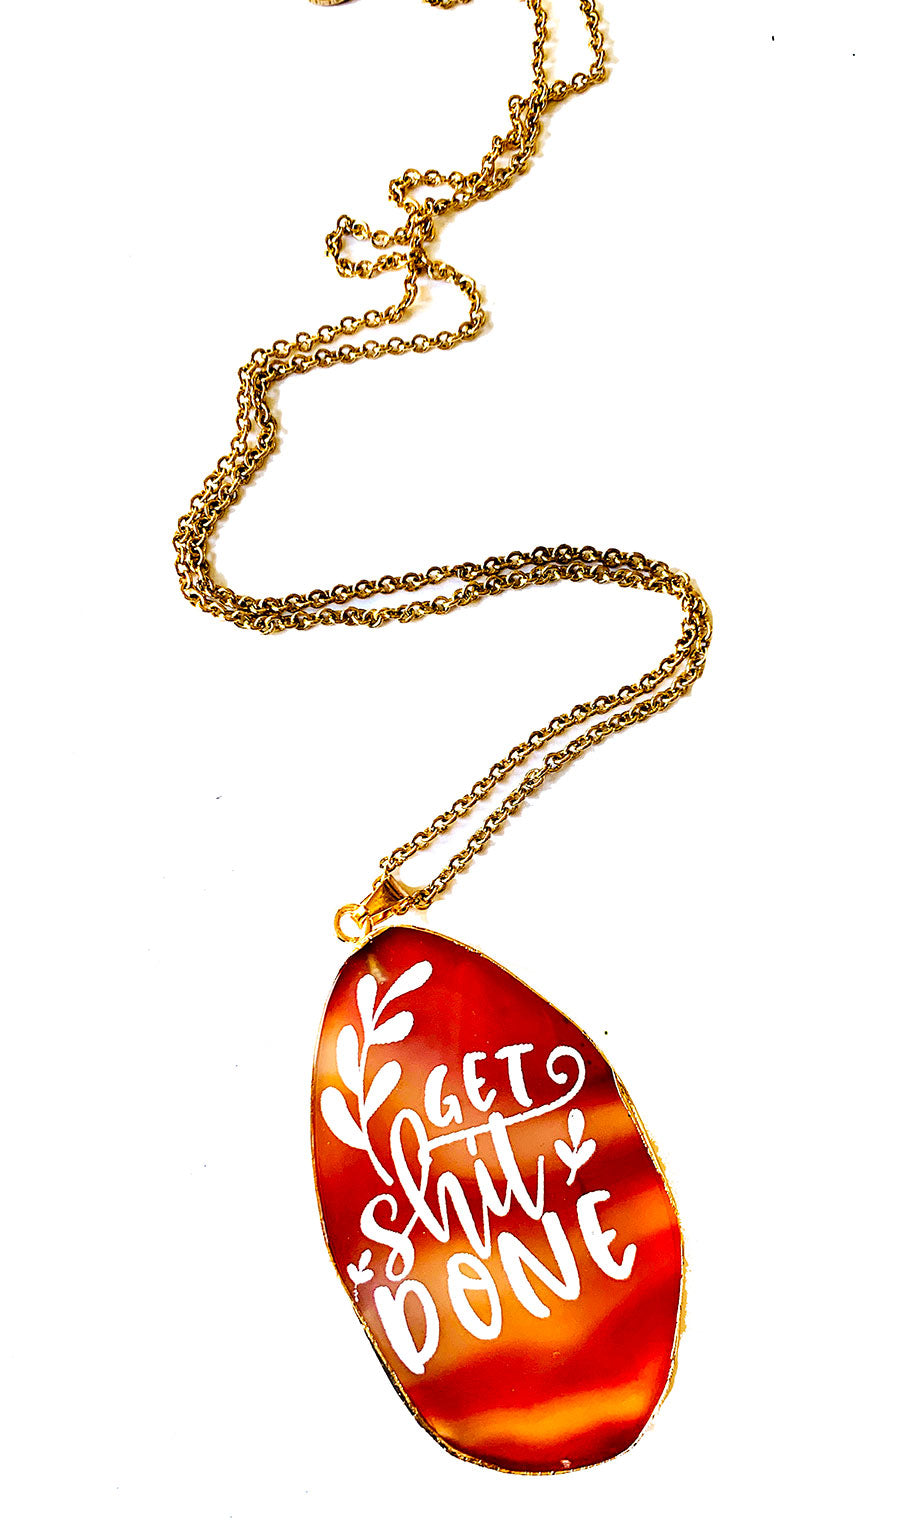 Get Shit Done Agate Slice Necklace